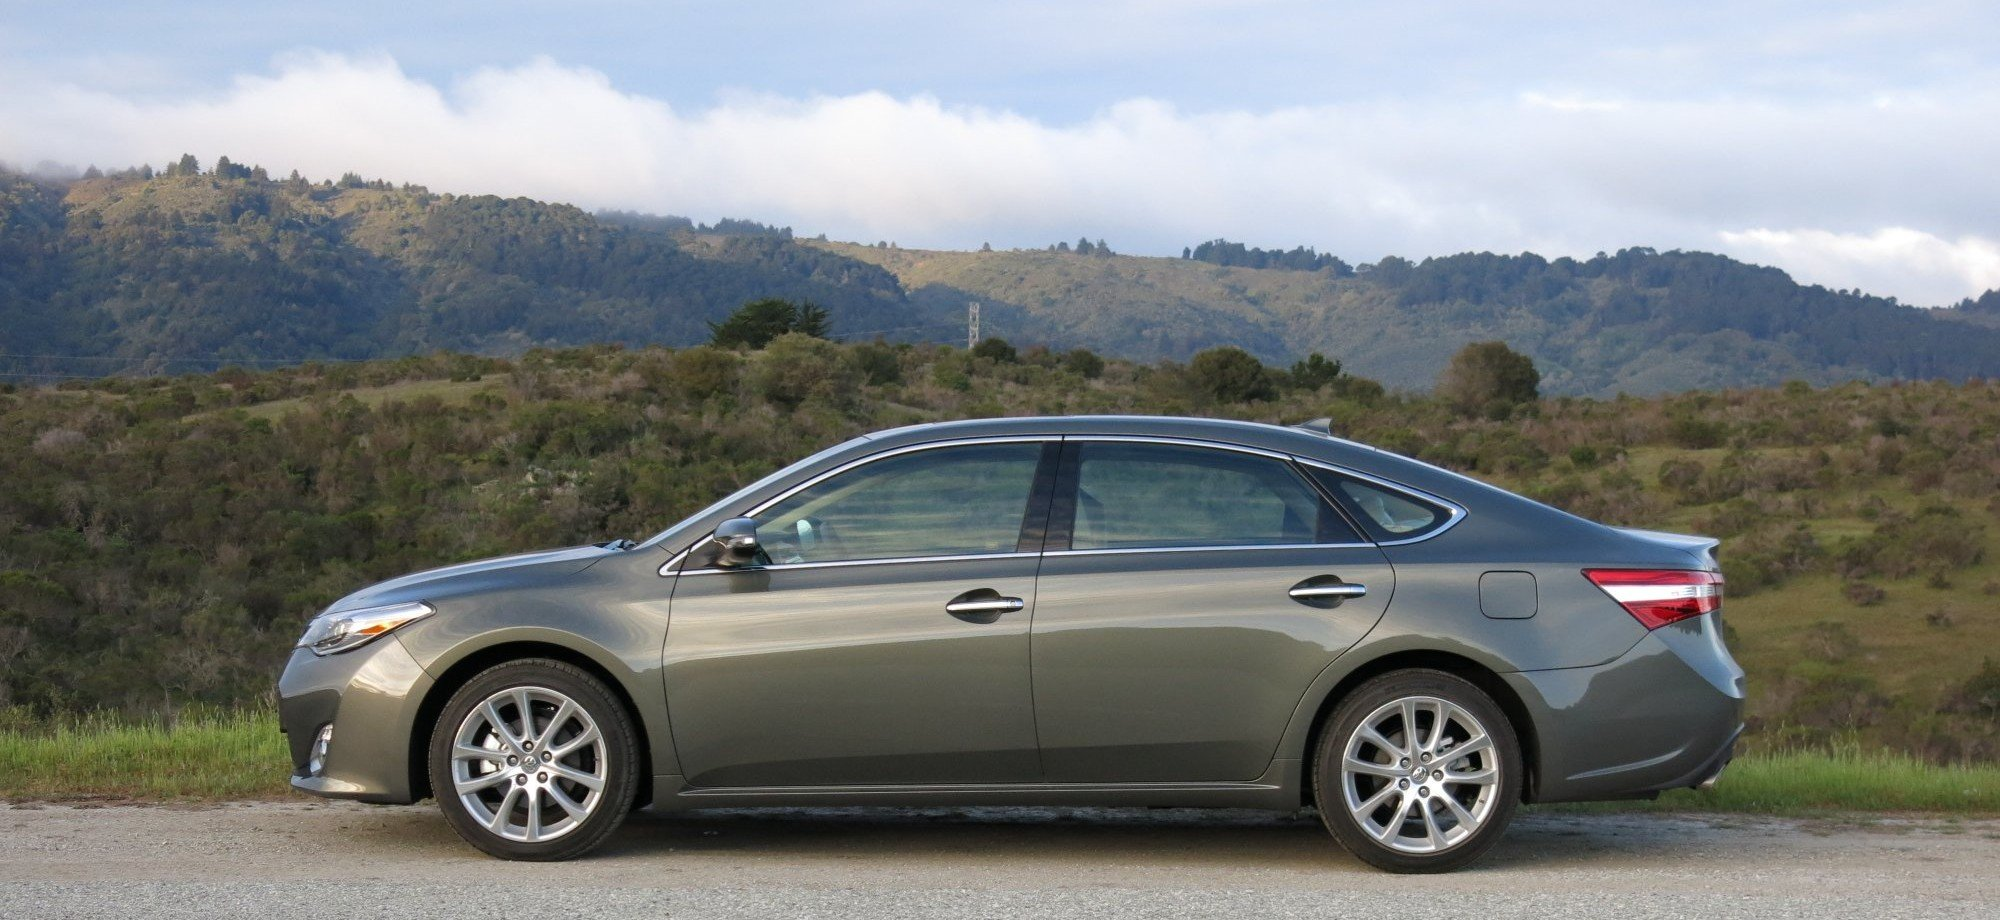 review 2013 toyota avalon limited video the truth about cars. Black Bedroom Furniture Sets. Home Design Ideas